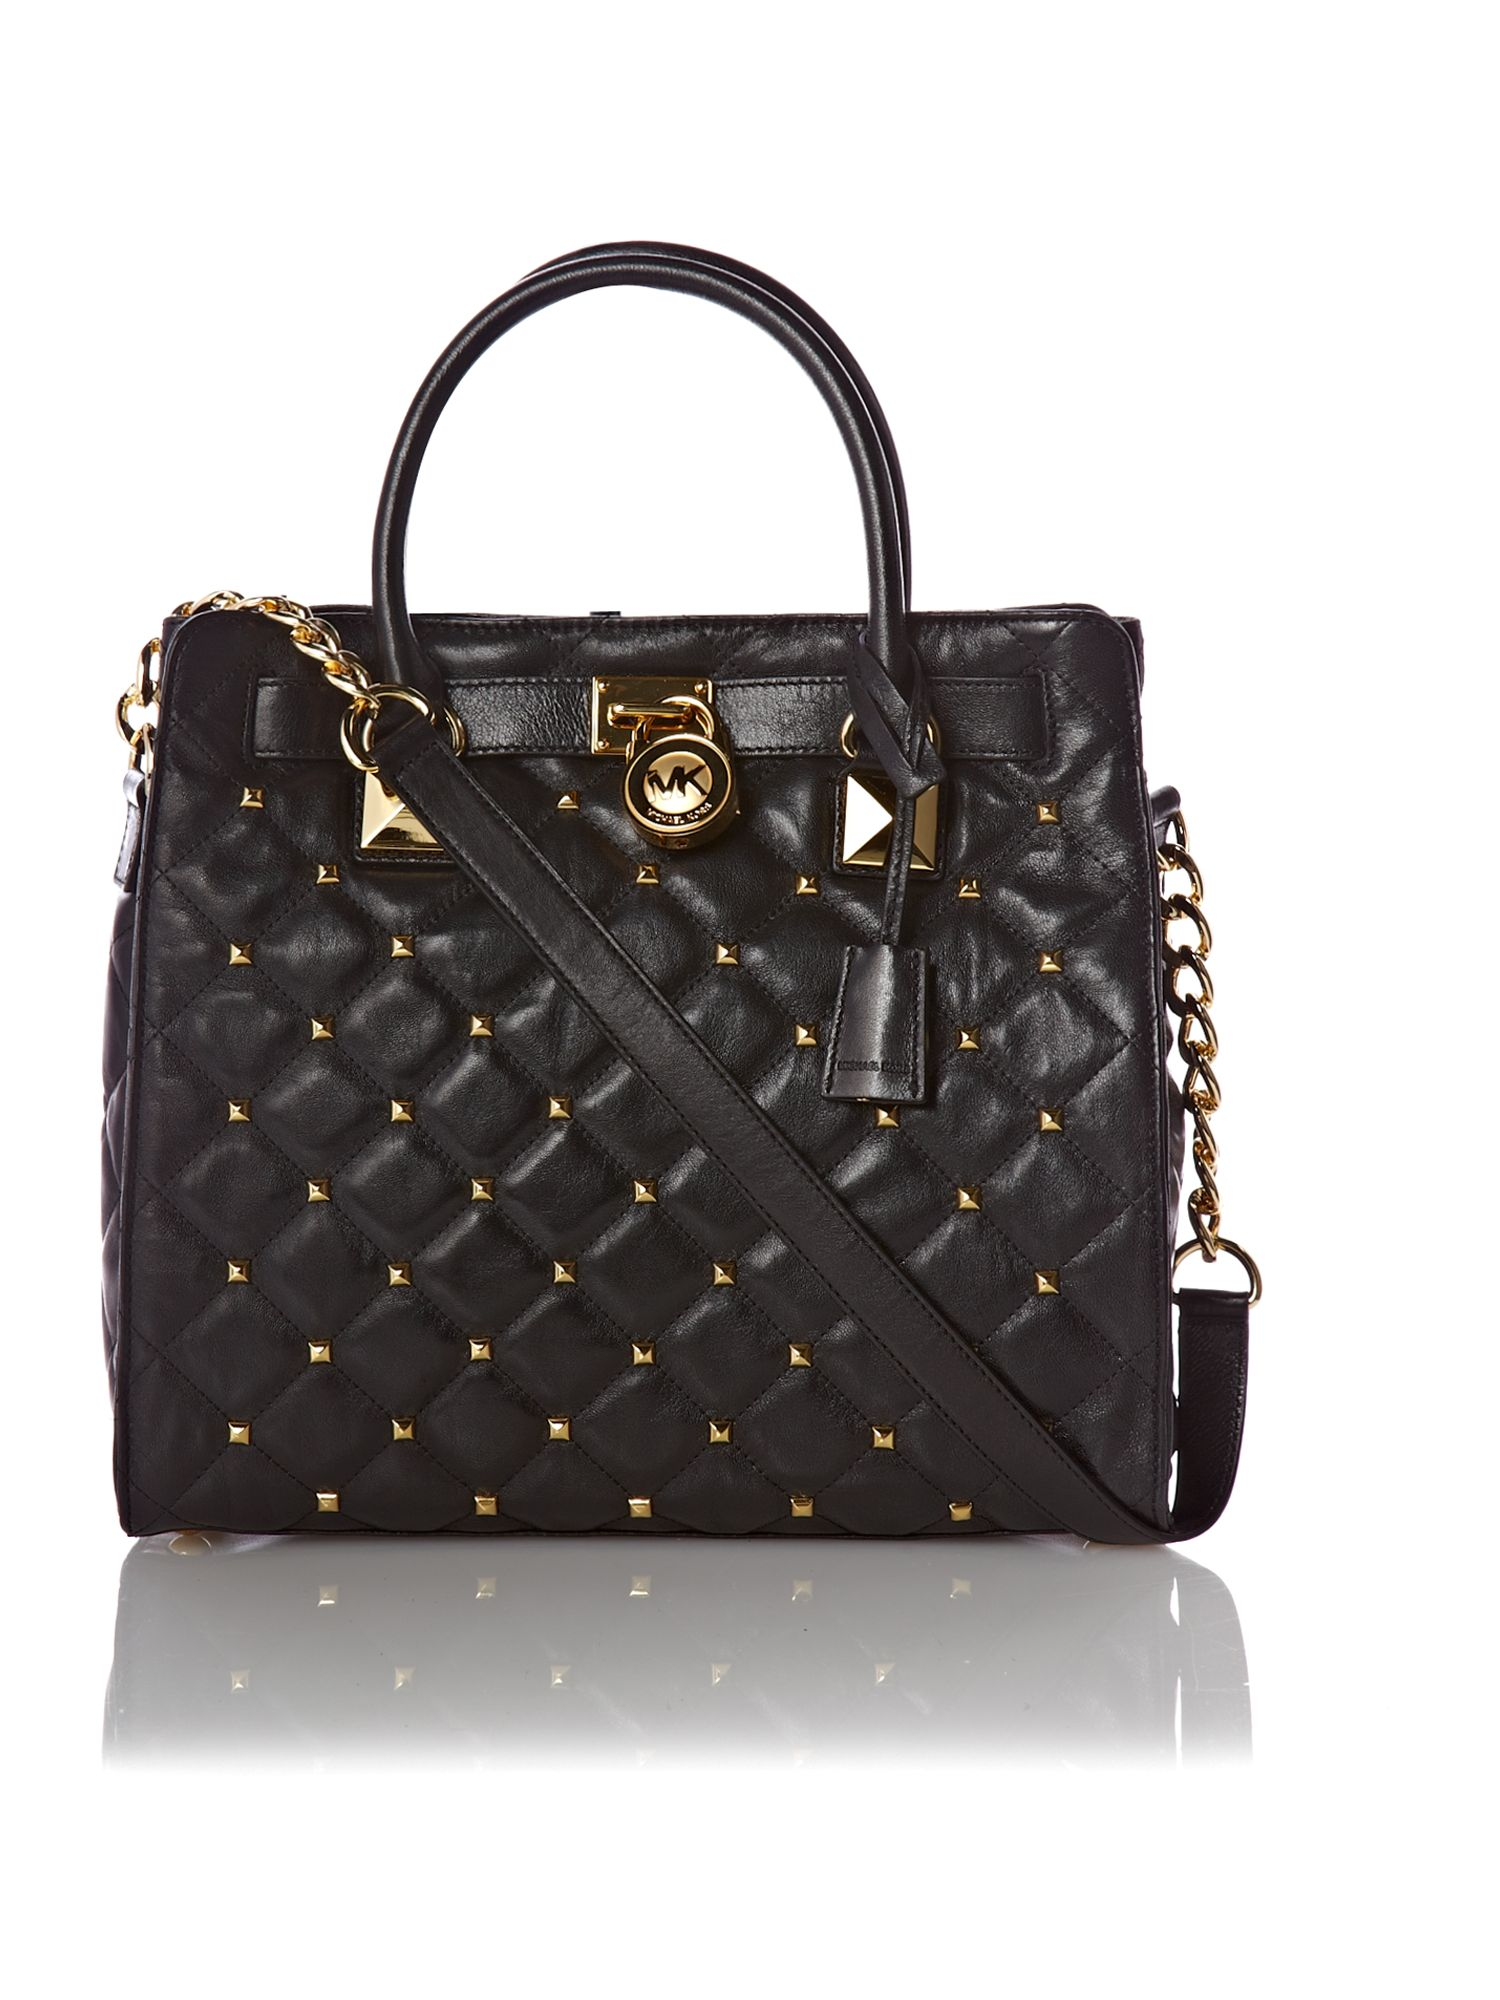 Michael Kors Stud Large Tote Bag In Black Lyst